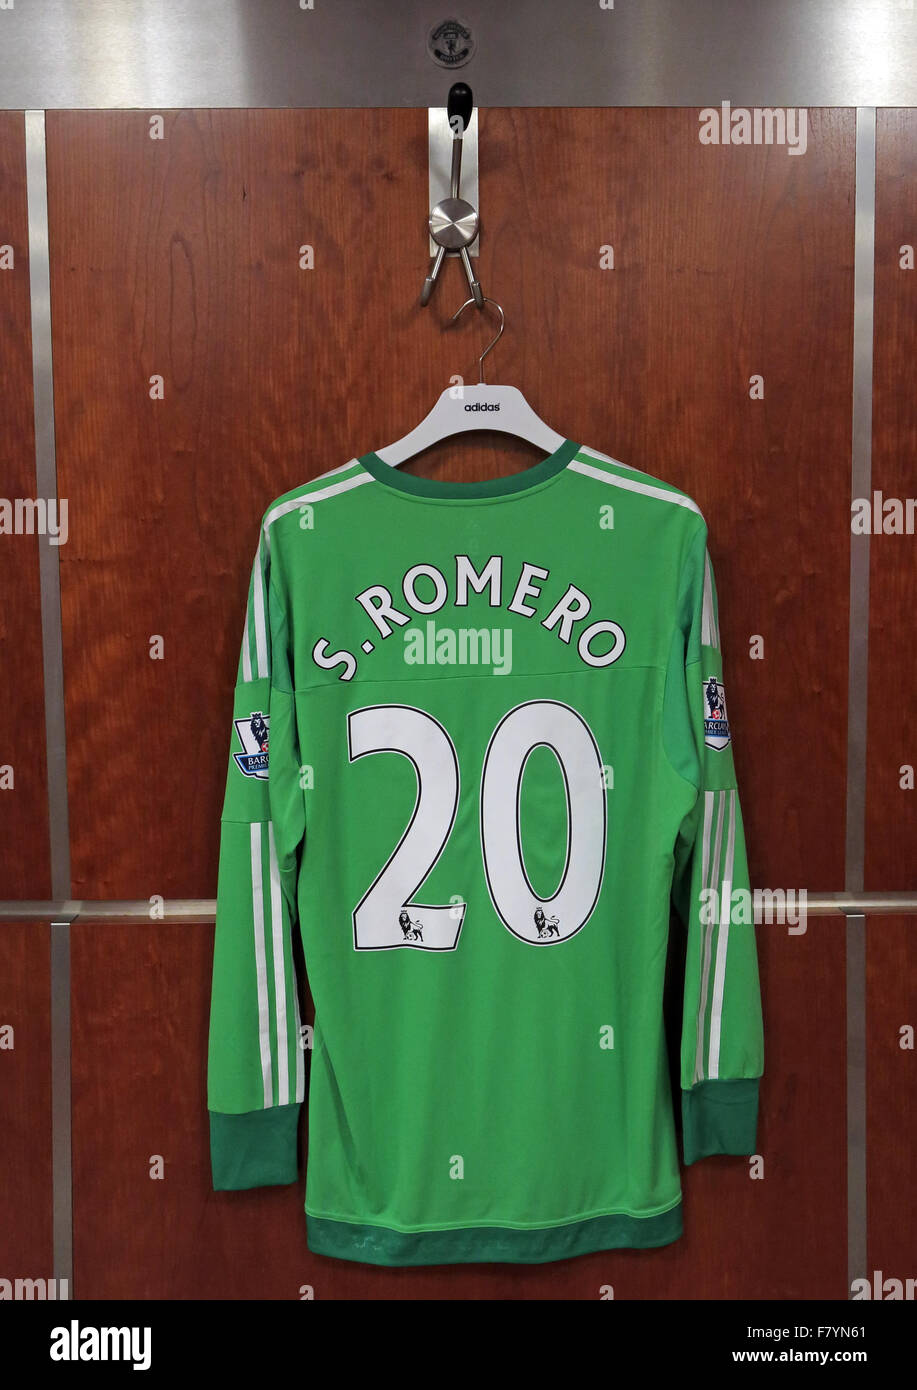 Stretford,England,UK,twenty,20,ManchesterUnited,Football,club,Soccer,FIFA,corruption,Sepp Blatter,Bootroom,English,British,champions,red,reds,Premier,League,Premiership,official,hook,Roony,10,ten,top,goalkeeper,goalie,Manchester United,Official Hook,S Romero,Green Shirt,Sergio,Romero,GoTonySmith,ManchesterUnited,MUFC,Mancester,MU,old,Trafford,theatre,of,dreams,Lancs,Lancashire,RedDevils,Red,Devils,Football,Club,FC,allseater,all-seater,association,away,balls,betting,britain,british,champions,changing,coaches,competition,culture,cups,division,documentary,dressing,england,english,fans,fixtures,game,goals,ground,heritage,history,home,homesoffootball,hooliganism,justice,kick,kick-off,league,managers,midweek,pitch,players,police,premier,promotion,referees,regulations,relegation,results,room,roots,rules,saturday,saturdays,scorers,season,seated,seater,seating,shinpads,shirt,shirts,sizes,sky,skysports,soccer,social,socks,sponsors,sport,stadia,stadium,standing,sundays,sunday,system,tables,team,terraces,tradition,trainers,Adidas,Puma,Buy Pictures of,Buy Images Of,Old Trafford,Theatre of Dreams,Theater of dreams,Red Devils